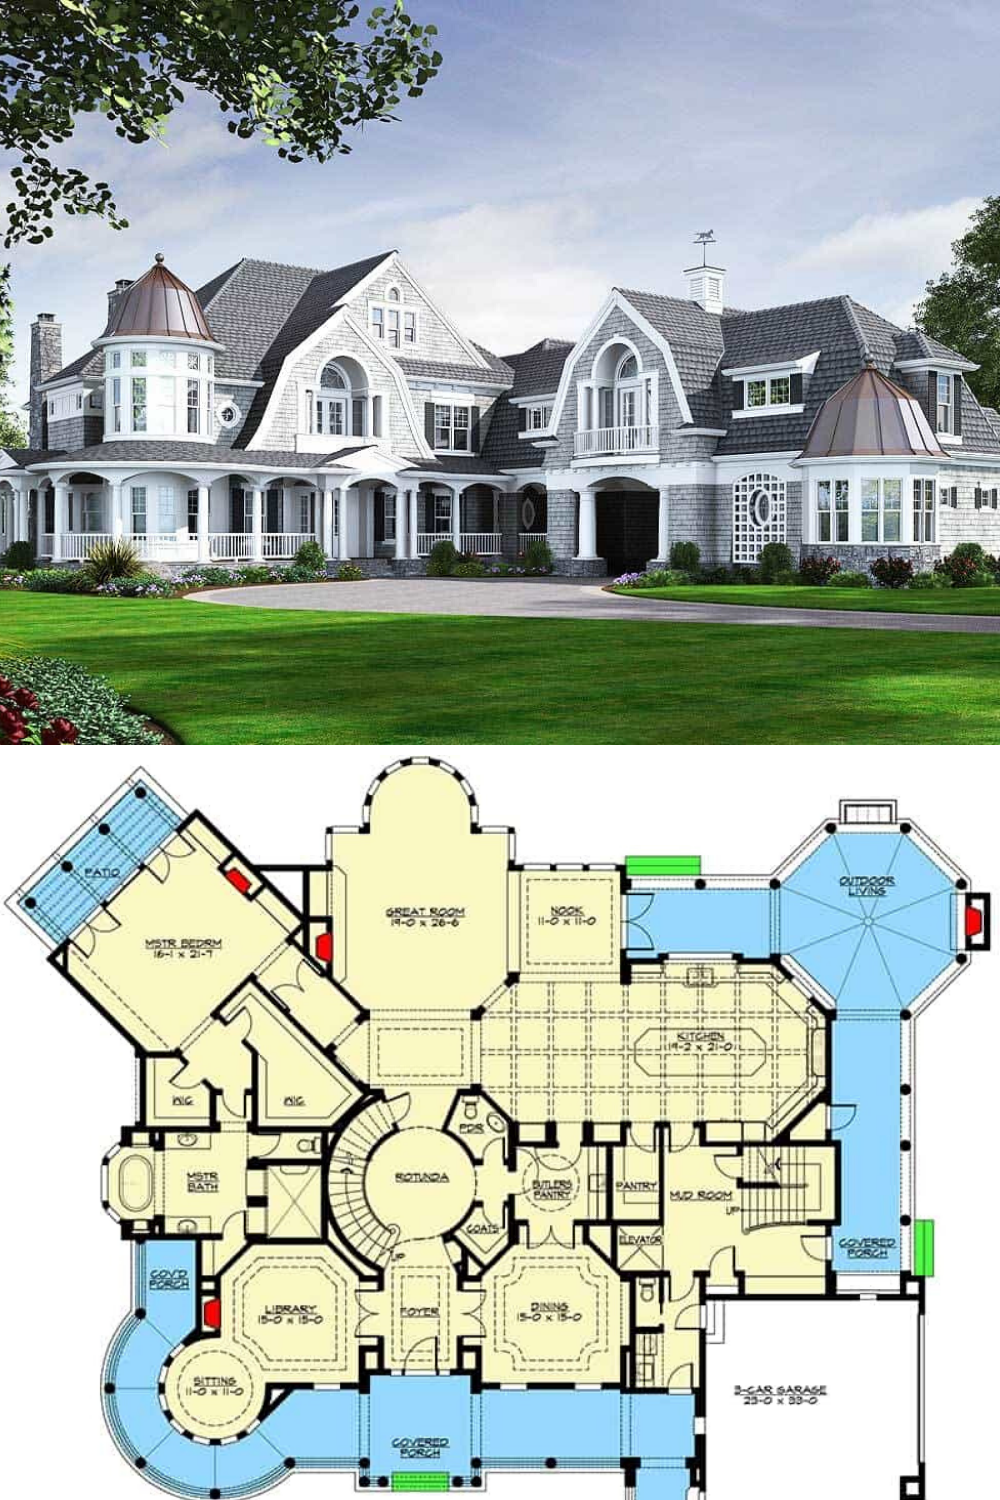 Two Story 5 Bedroom Newport Home Floor Plan In 2021 Mansion Floor Plan House Plans Mansion Farmhouse Floor Plans